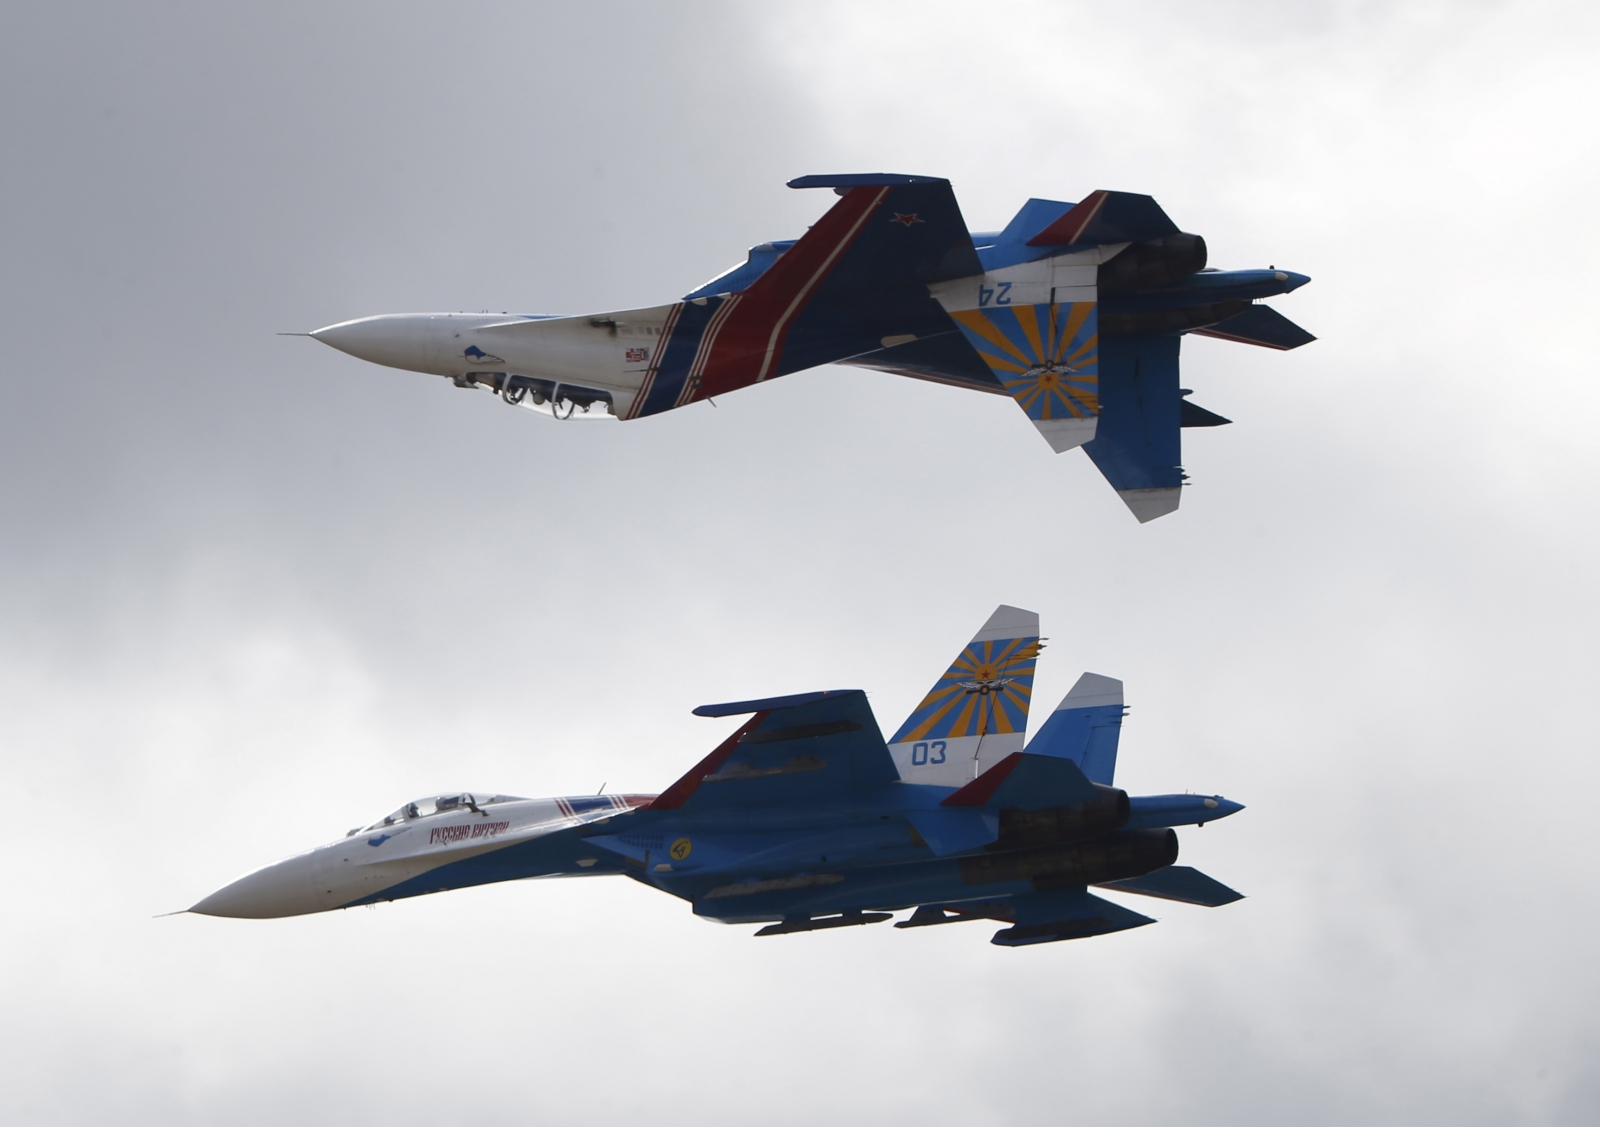 Russian jet intercepted over Baltic Sea